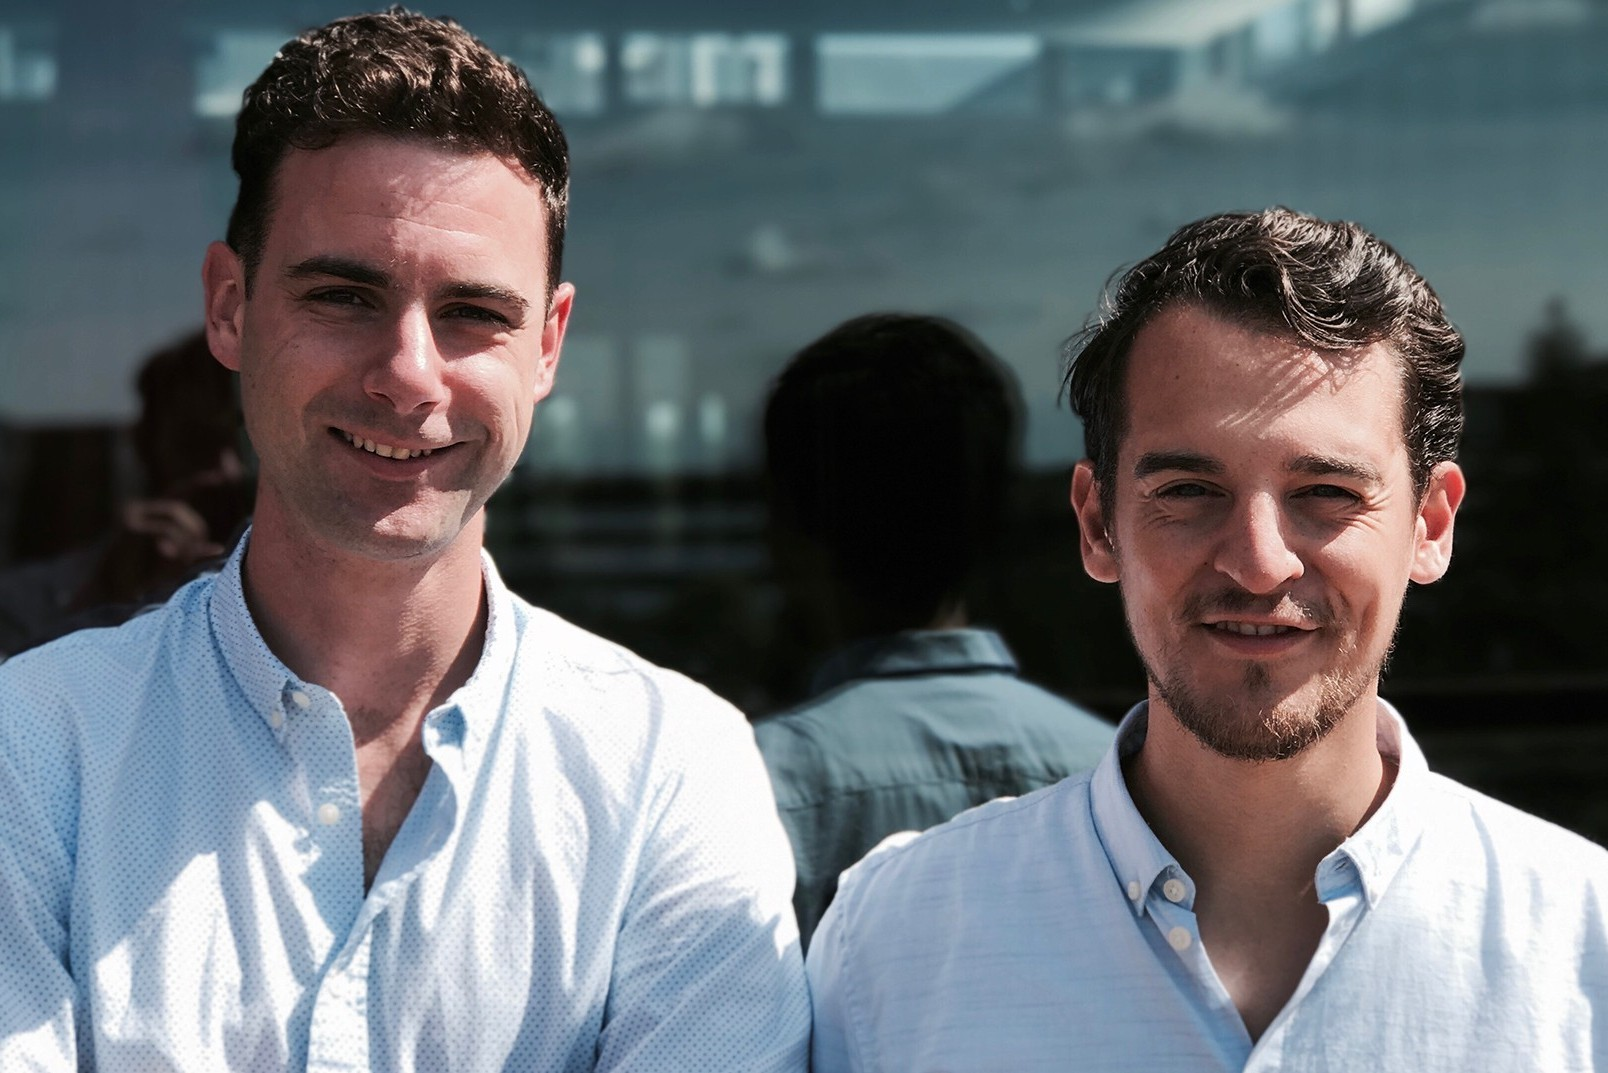 Jean-Luc & Theo are the founders of TinQwise Immersive